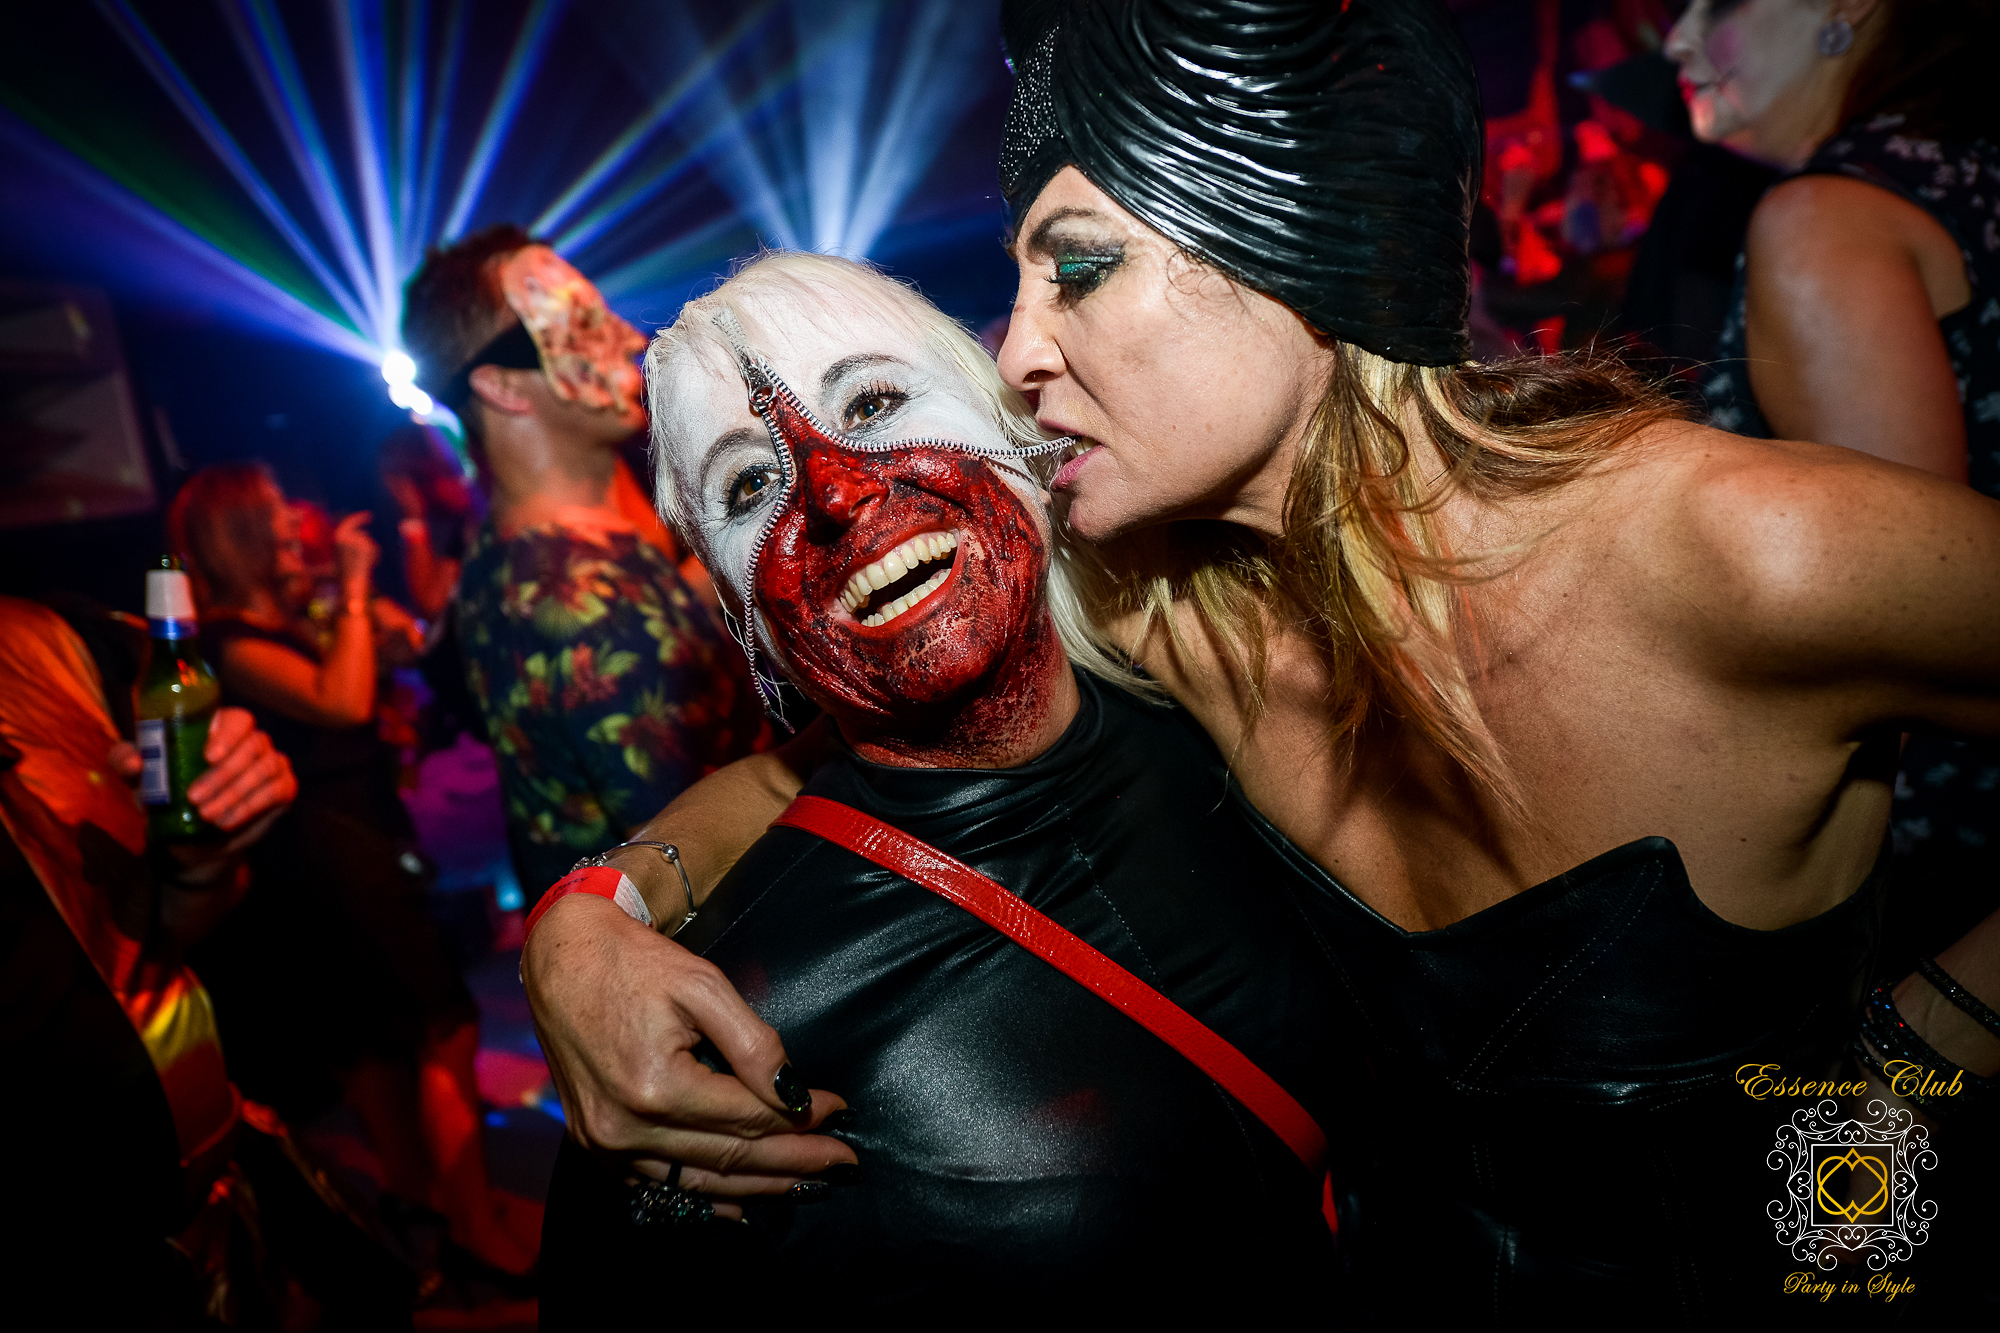 Heaven and hell party zip face